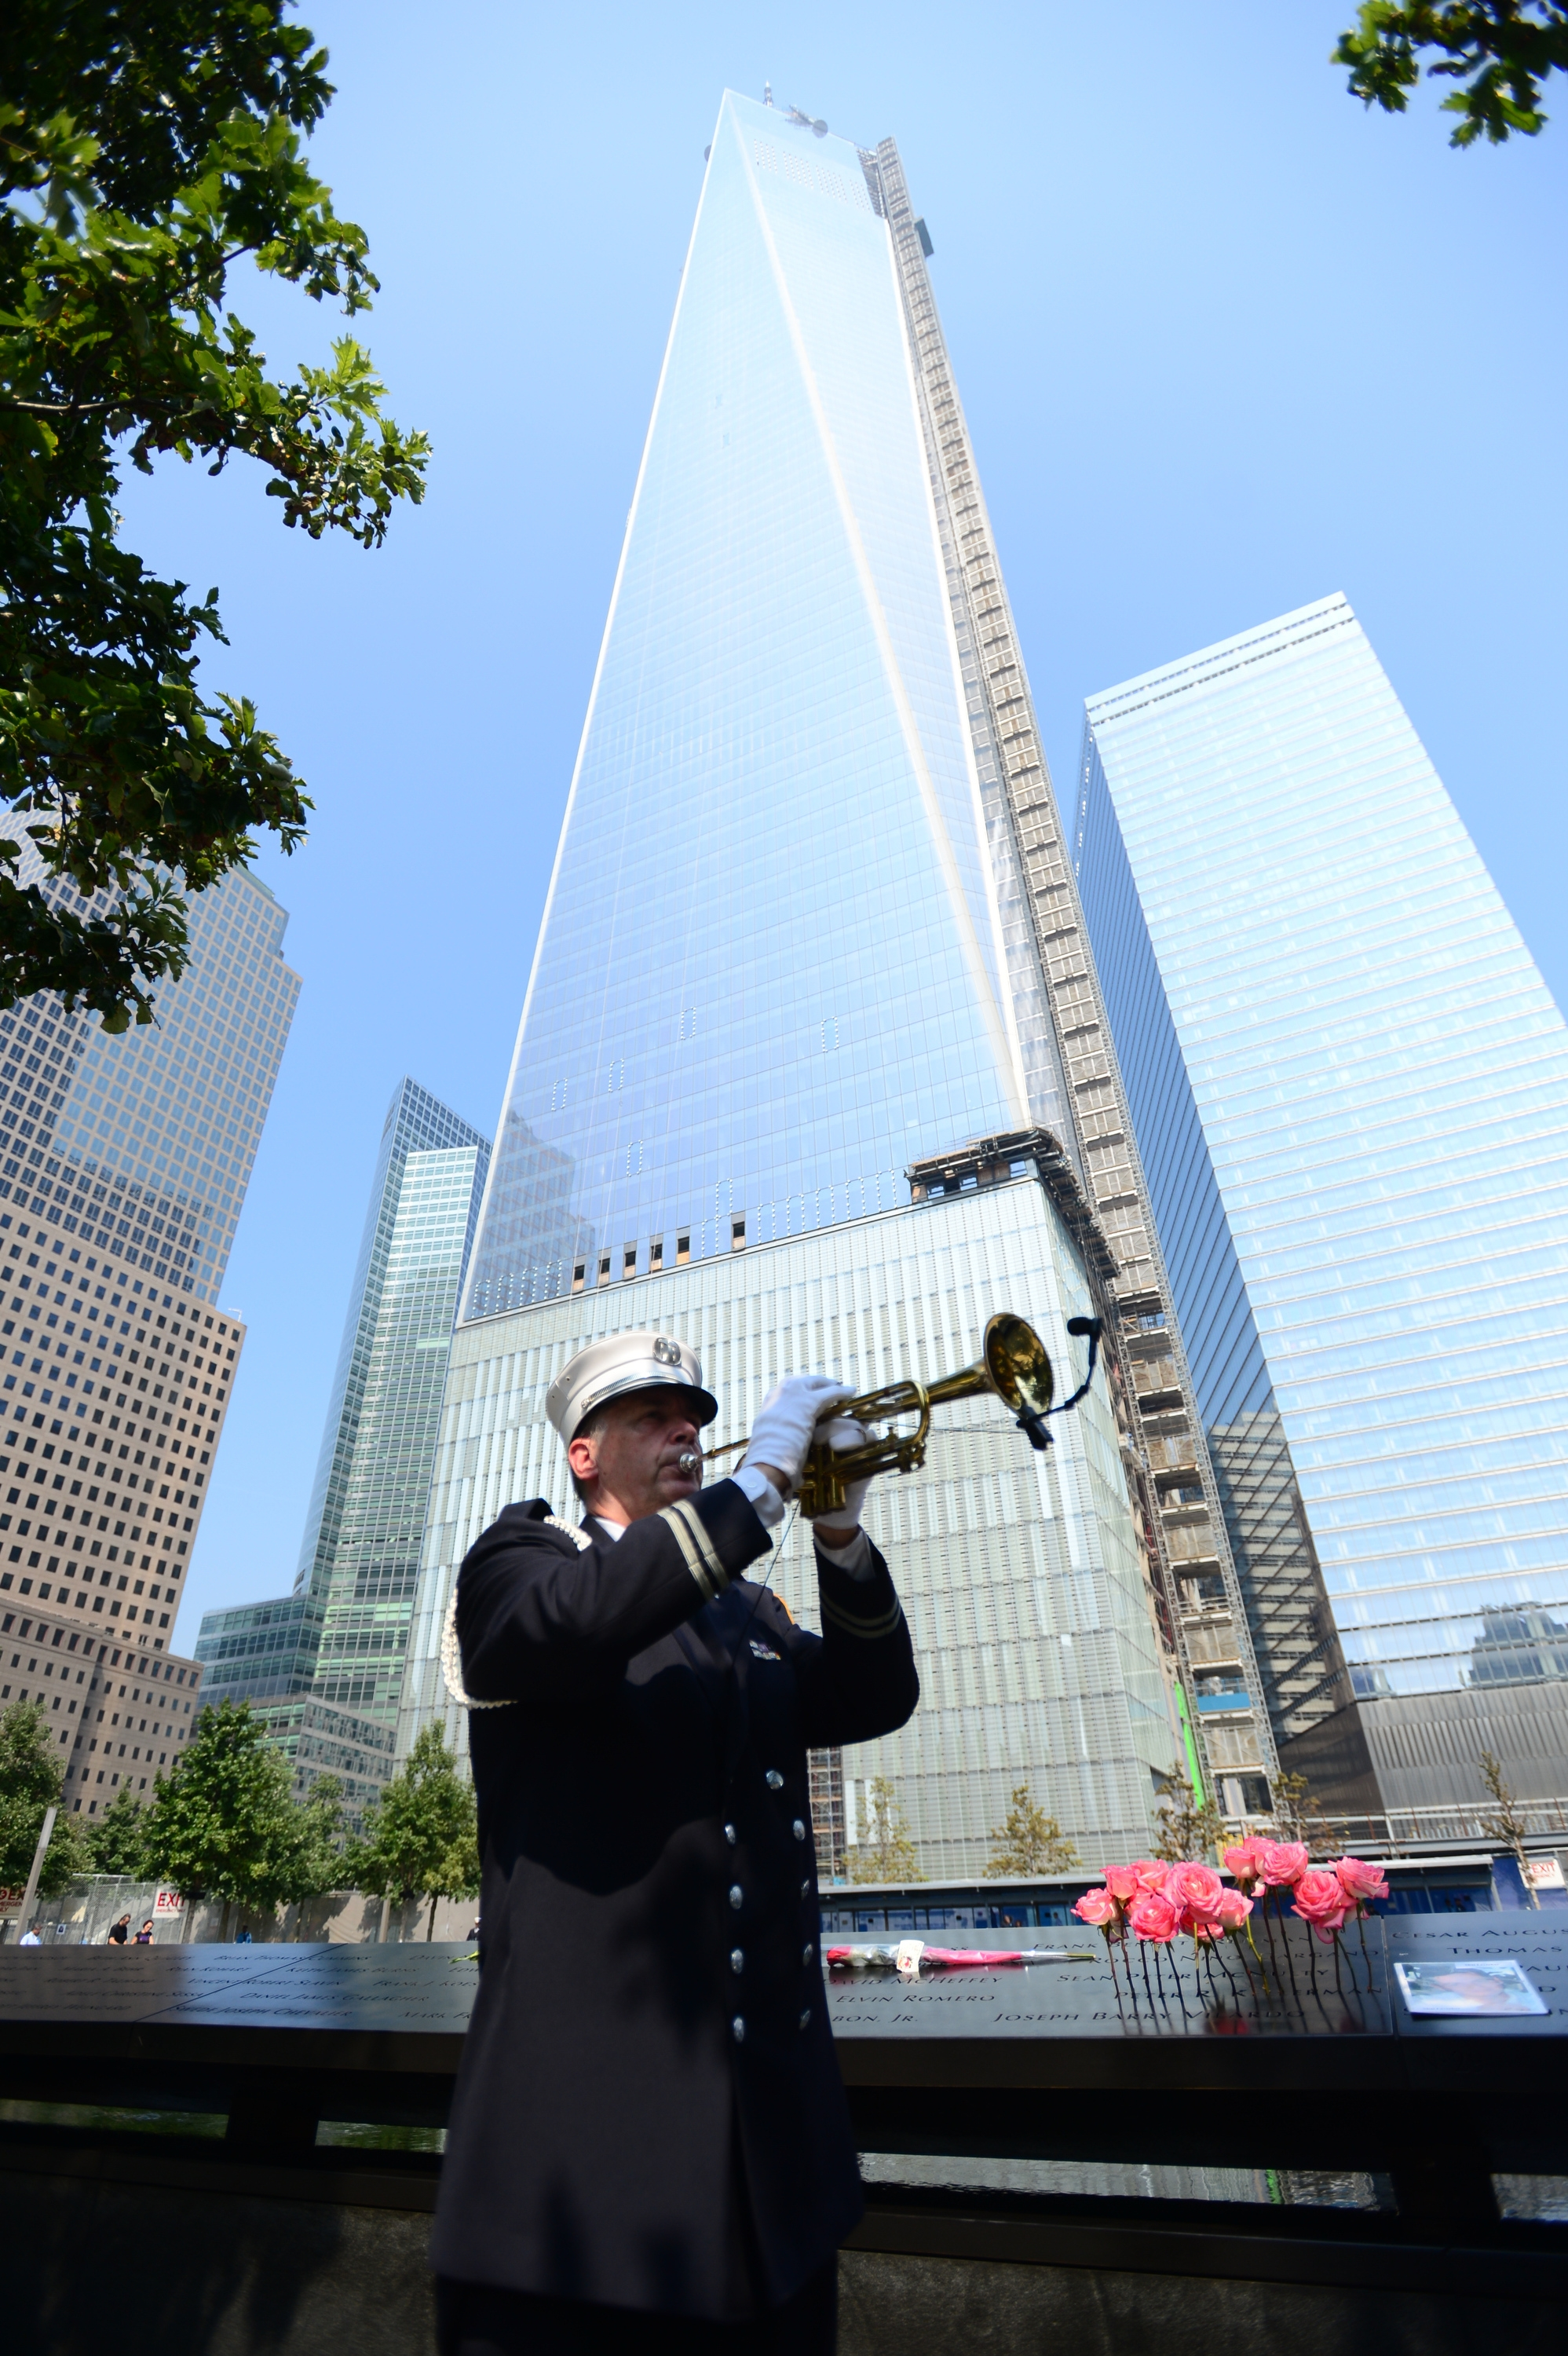 New York Fire Department Captain Tom Engel plays taps at the 9/11 Memorial during ceremonies Wednesday for the 12th anniversary of the Sept. 11, 2001, terrorist attacks.